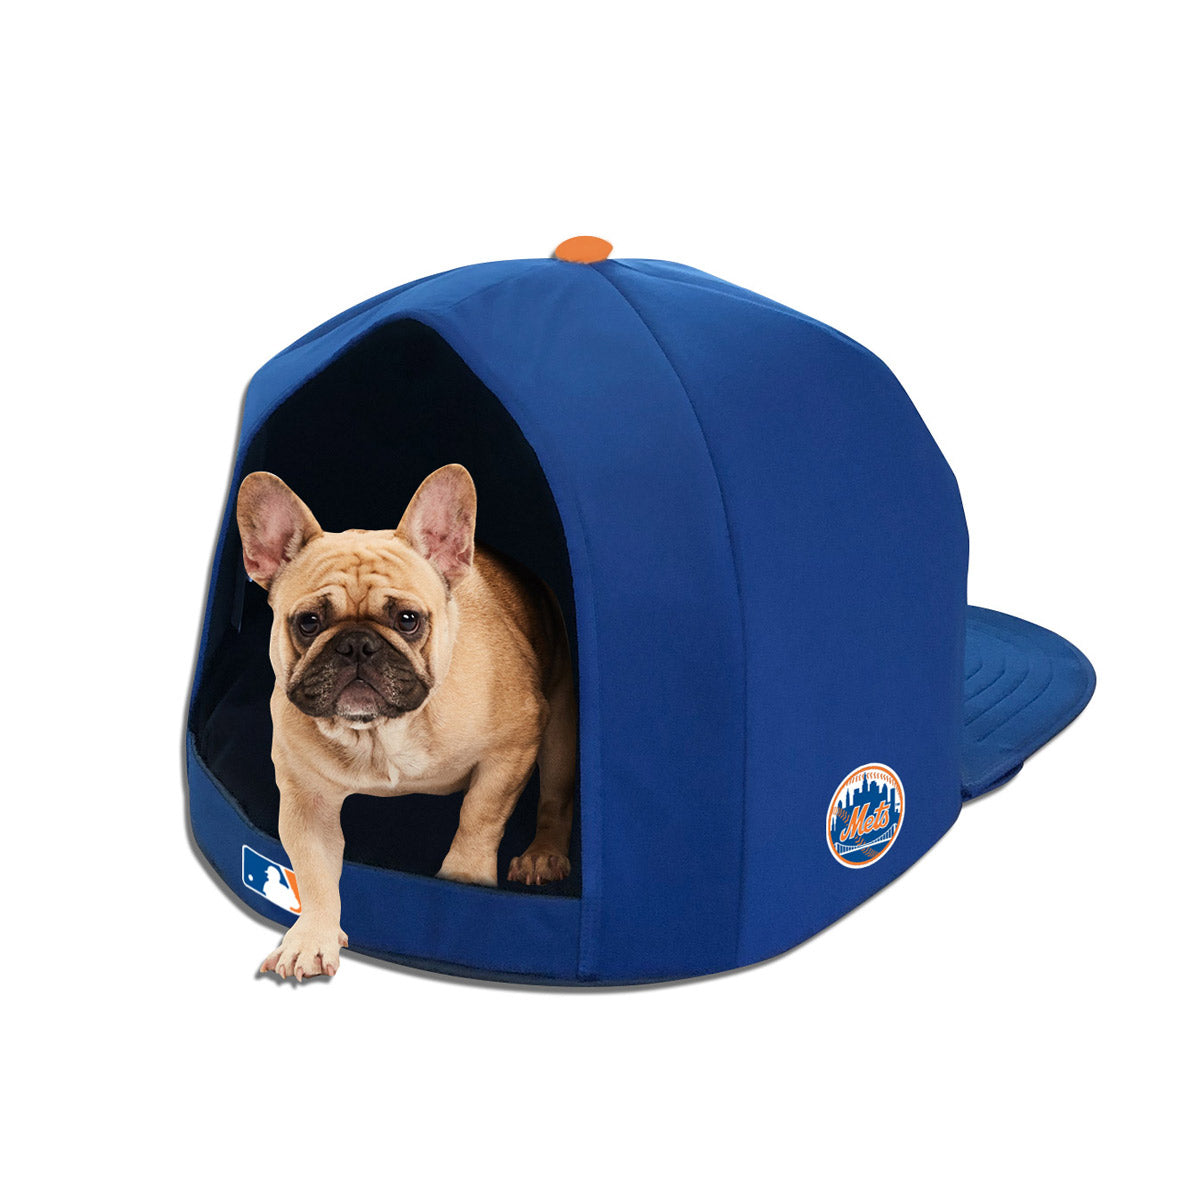 New York Mets Nap Cap Plush Dog Bed